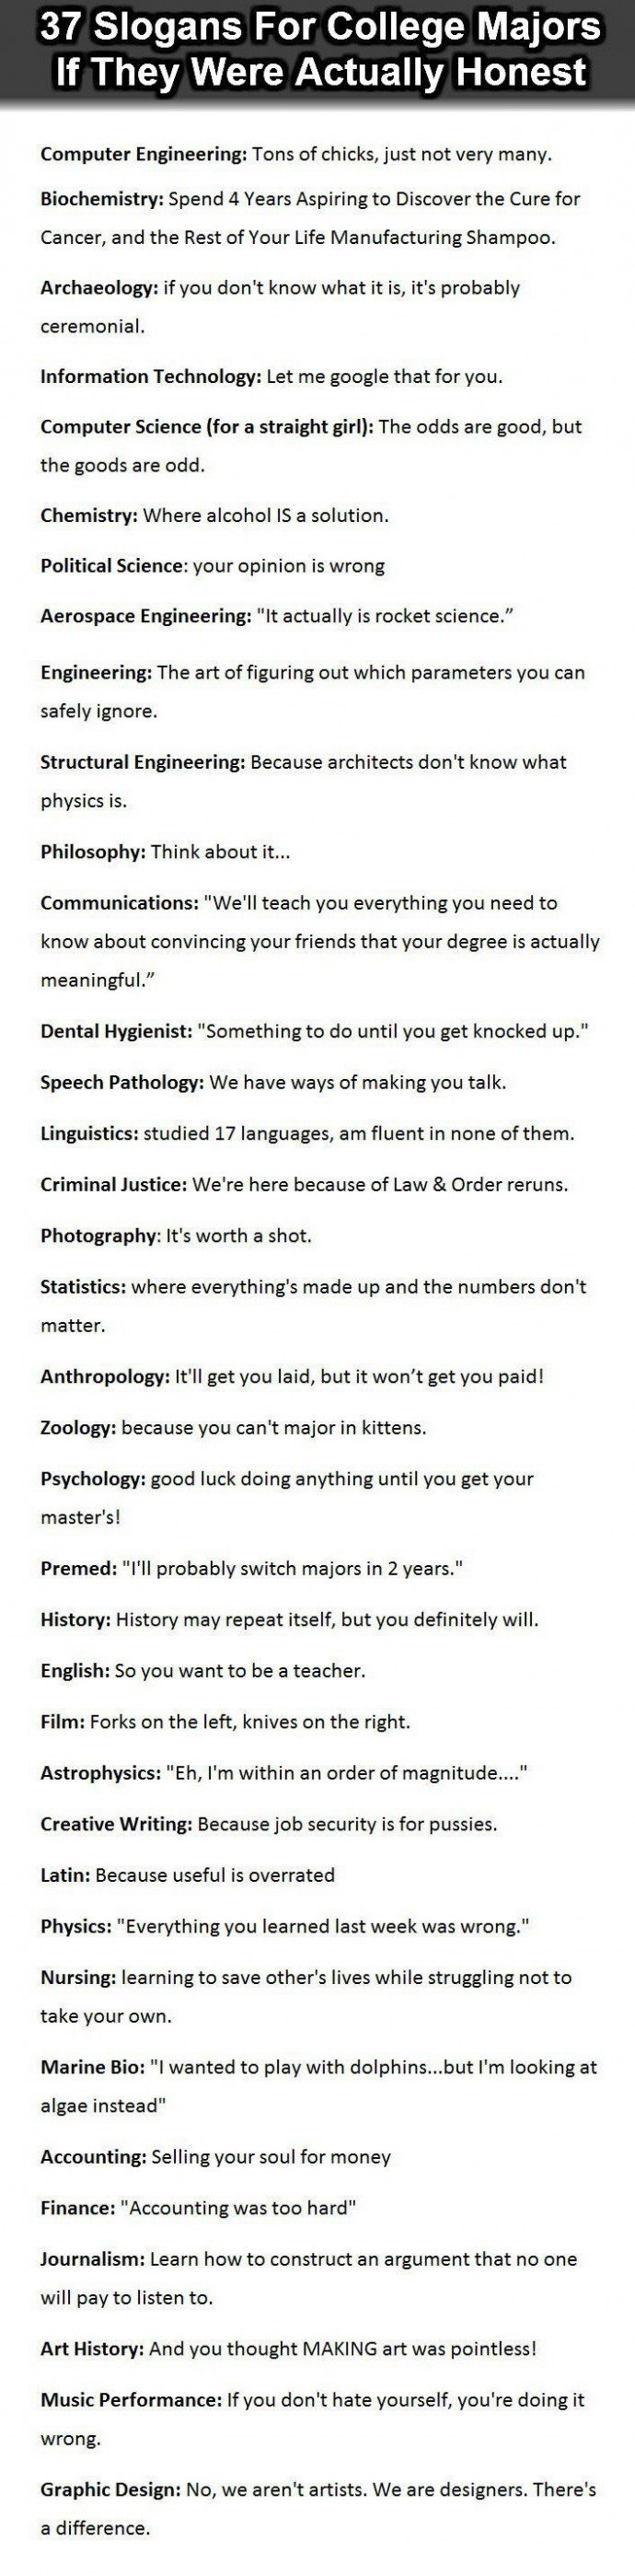 37-slogans-for-college-majors-if-they-were-actually-honest-list